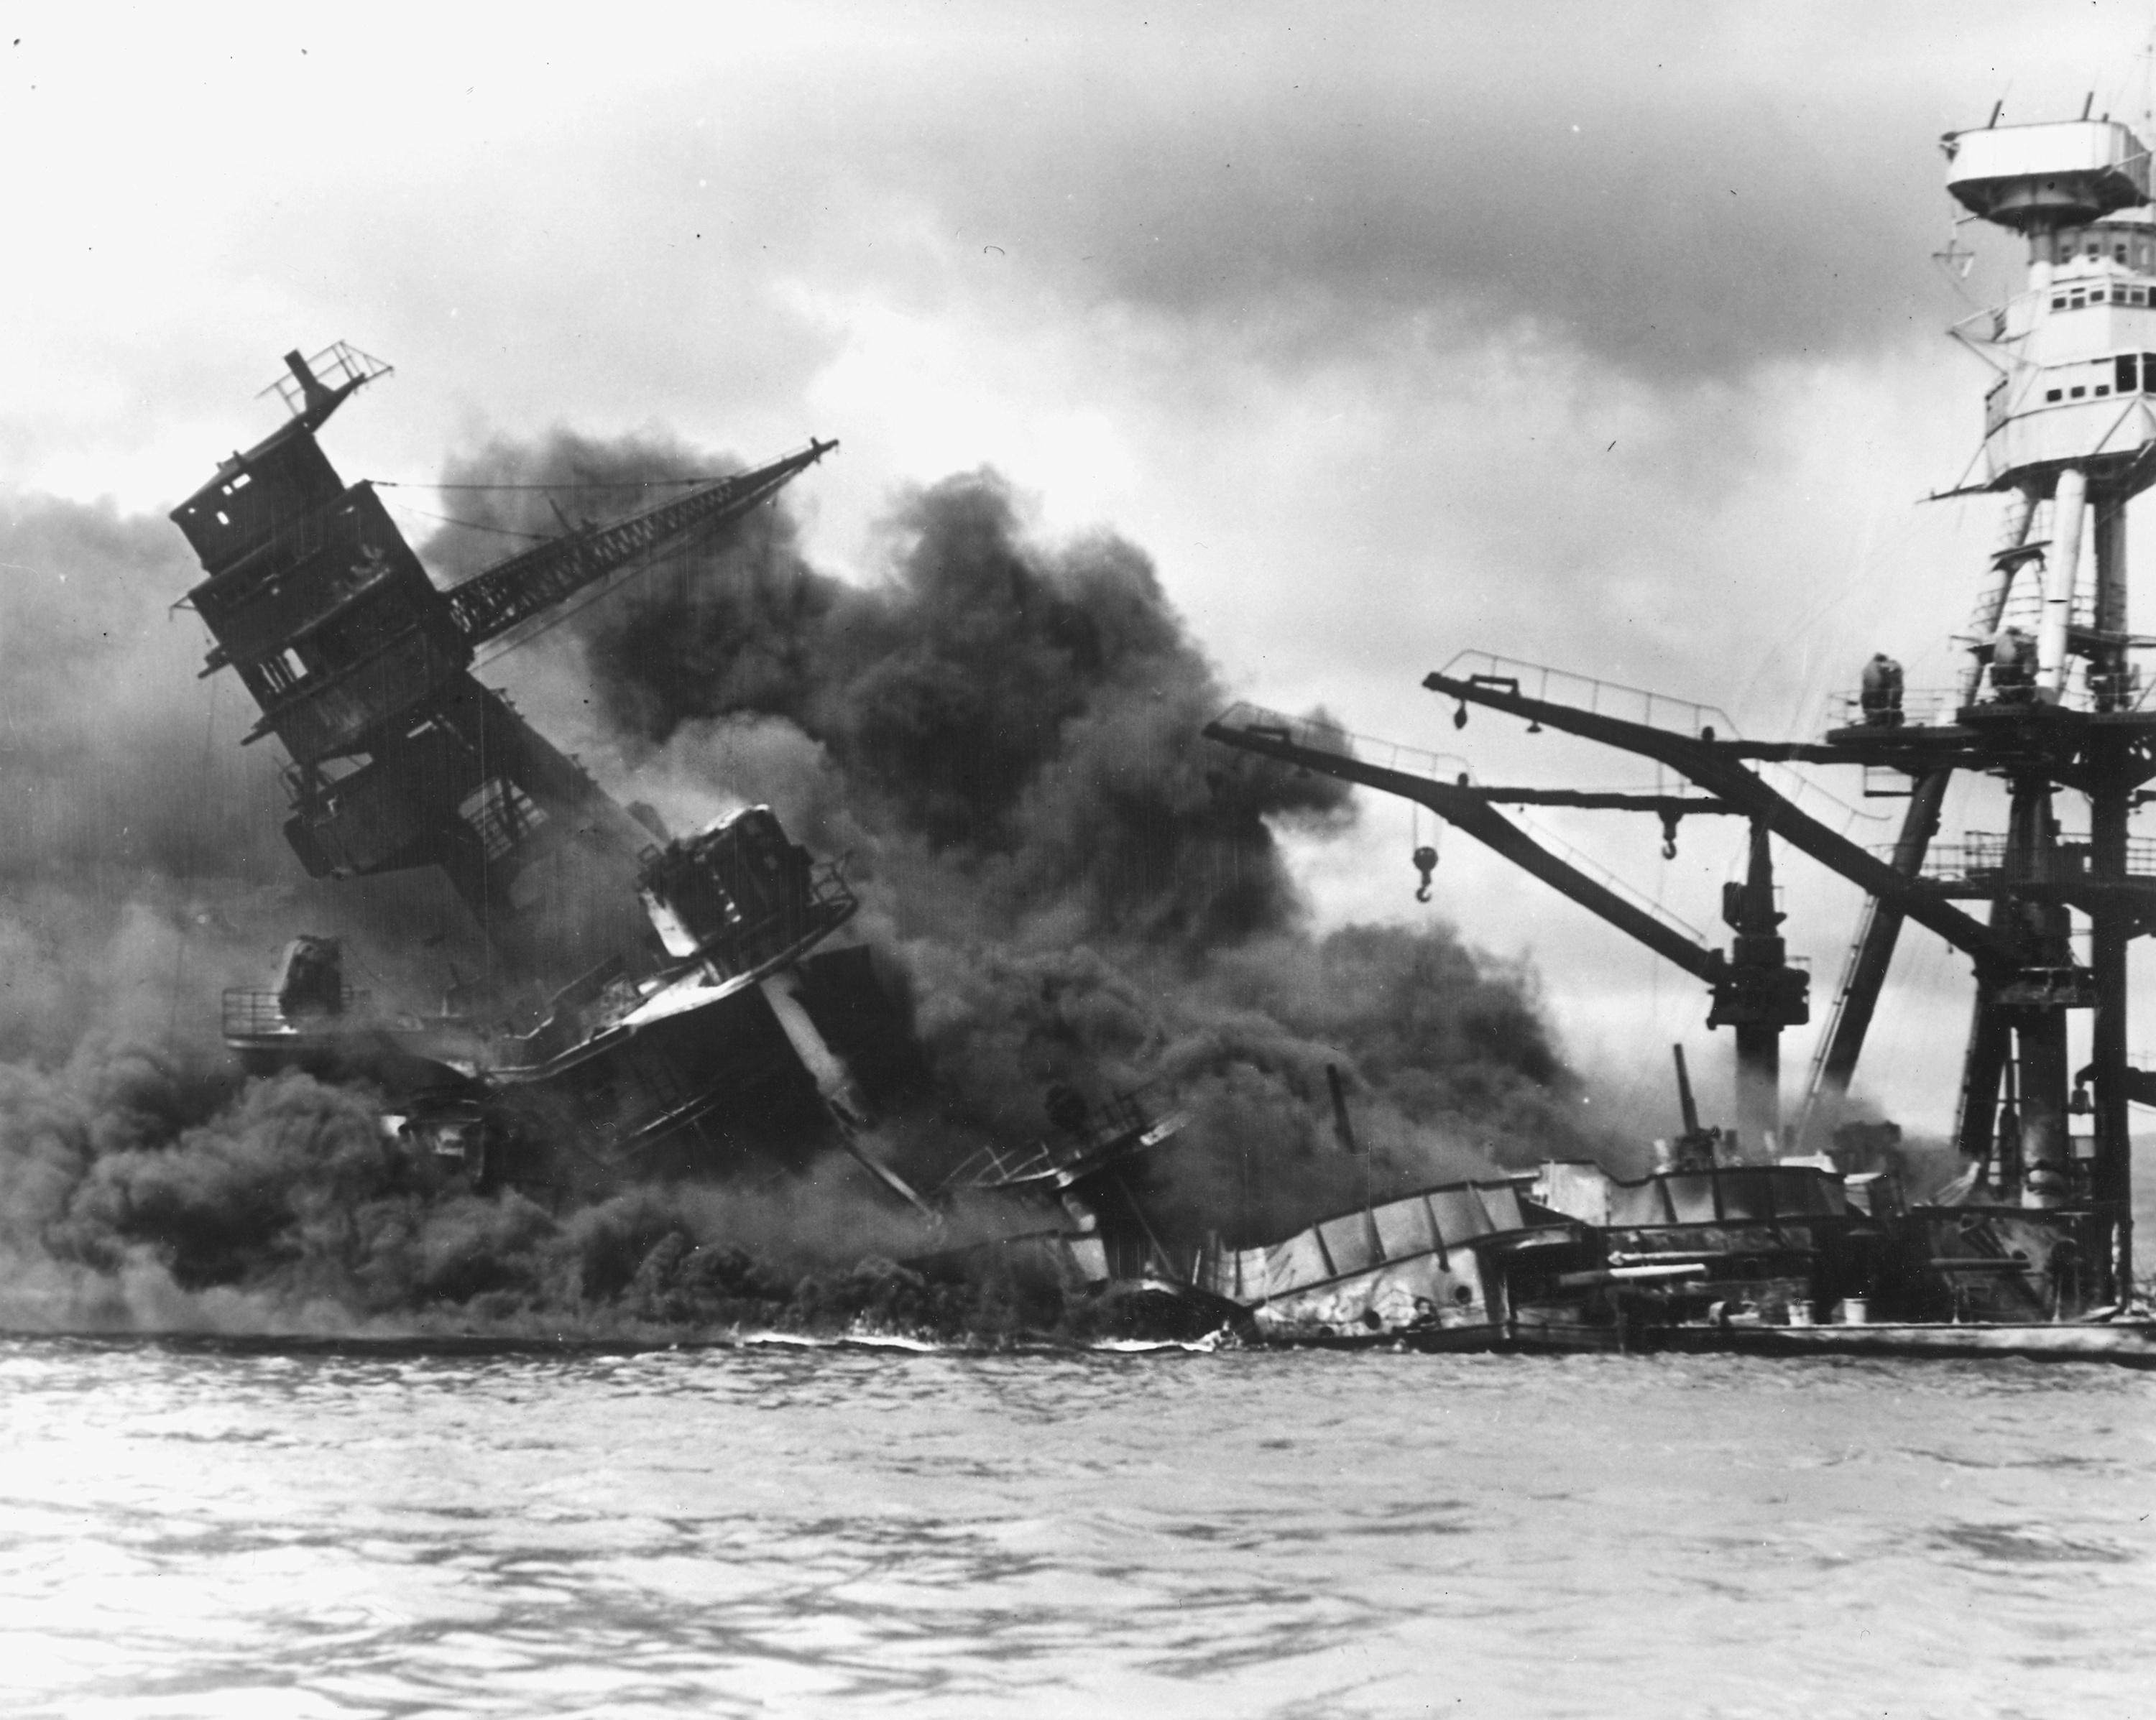 Pearl Harbor Day Facts 2017: 76 Years Since Japan's Attack On US